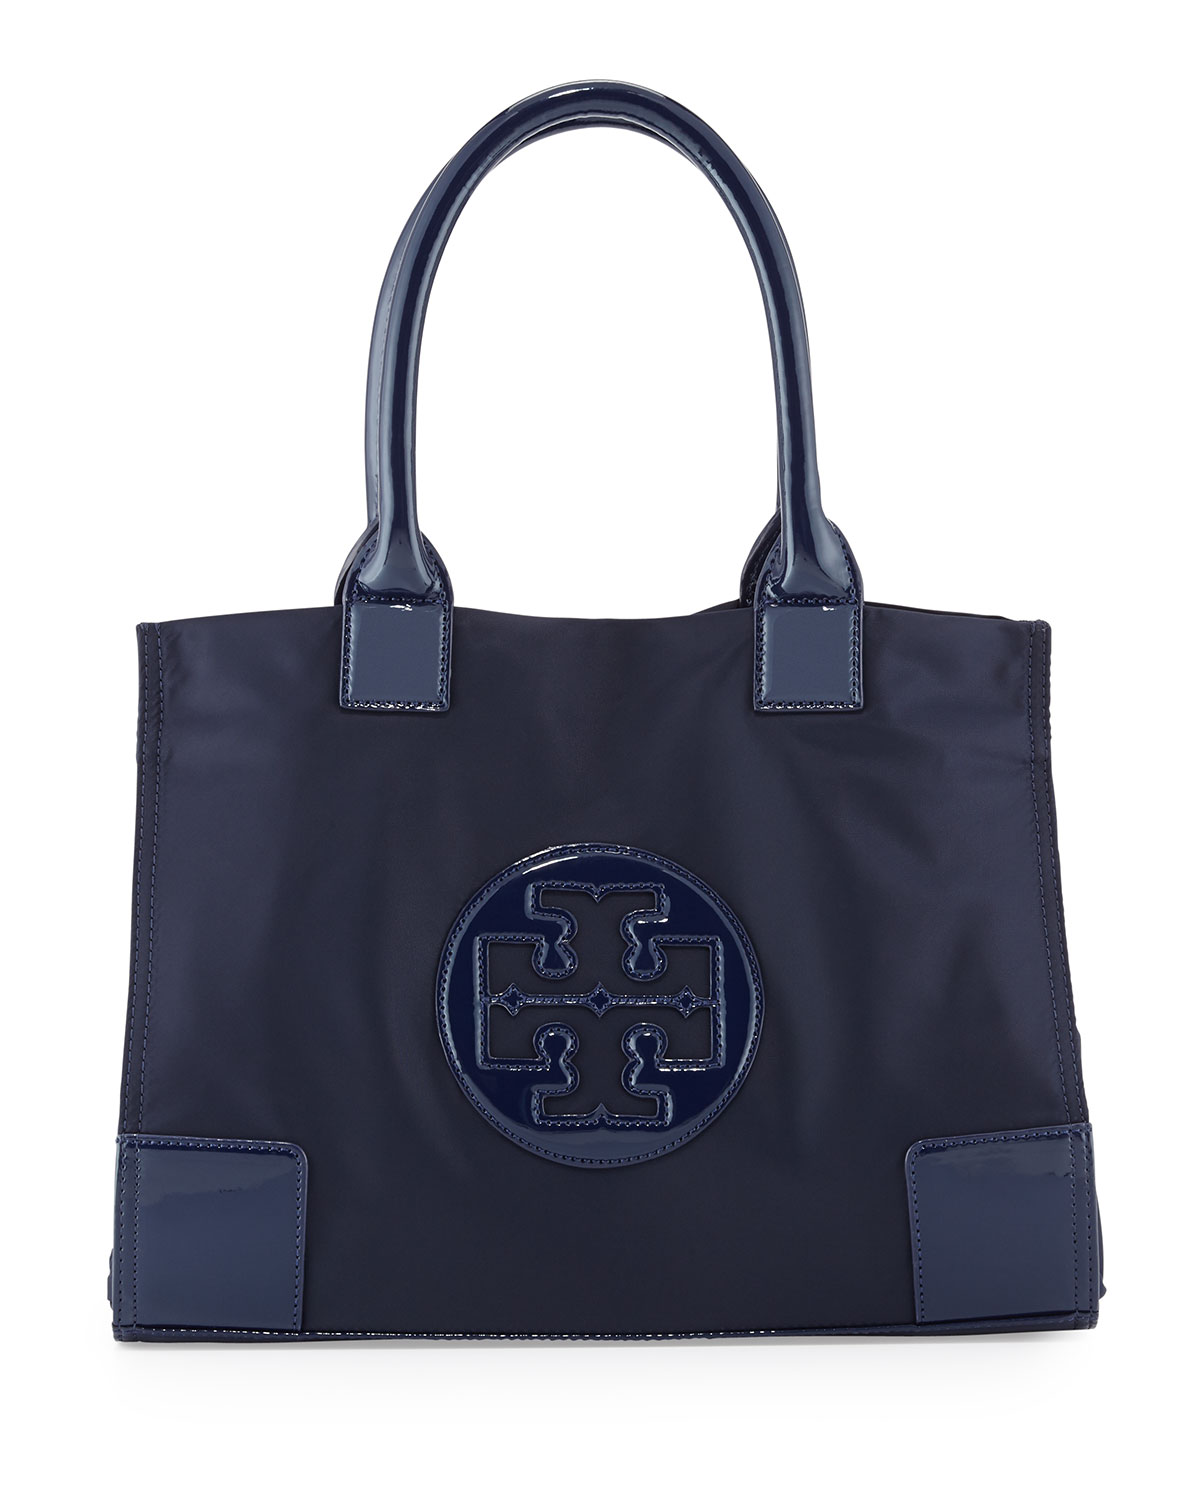 eb52fc274181 Tory Burch Ella Mini Nylon Tote Bag